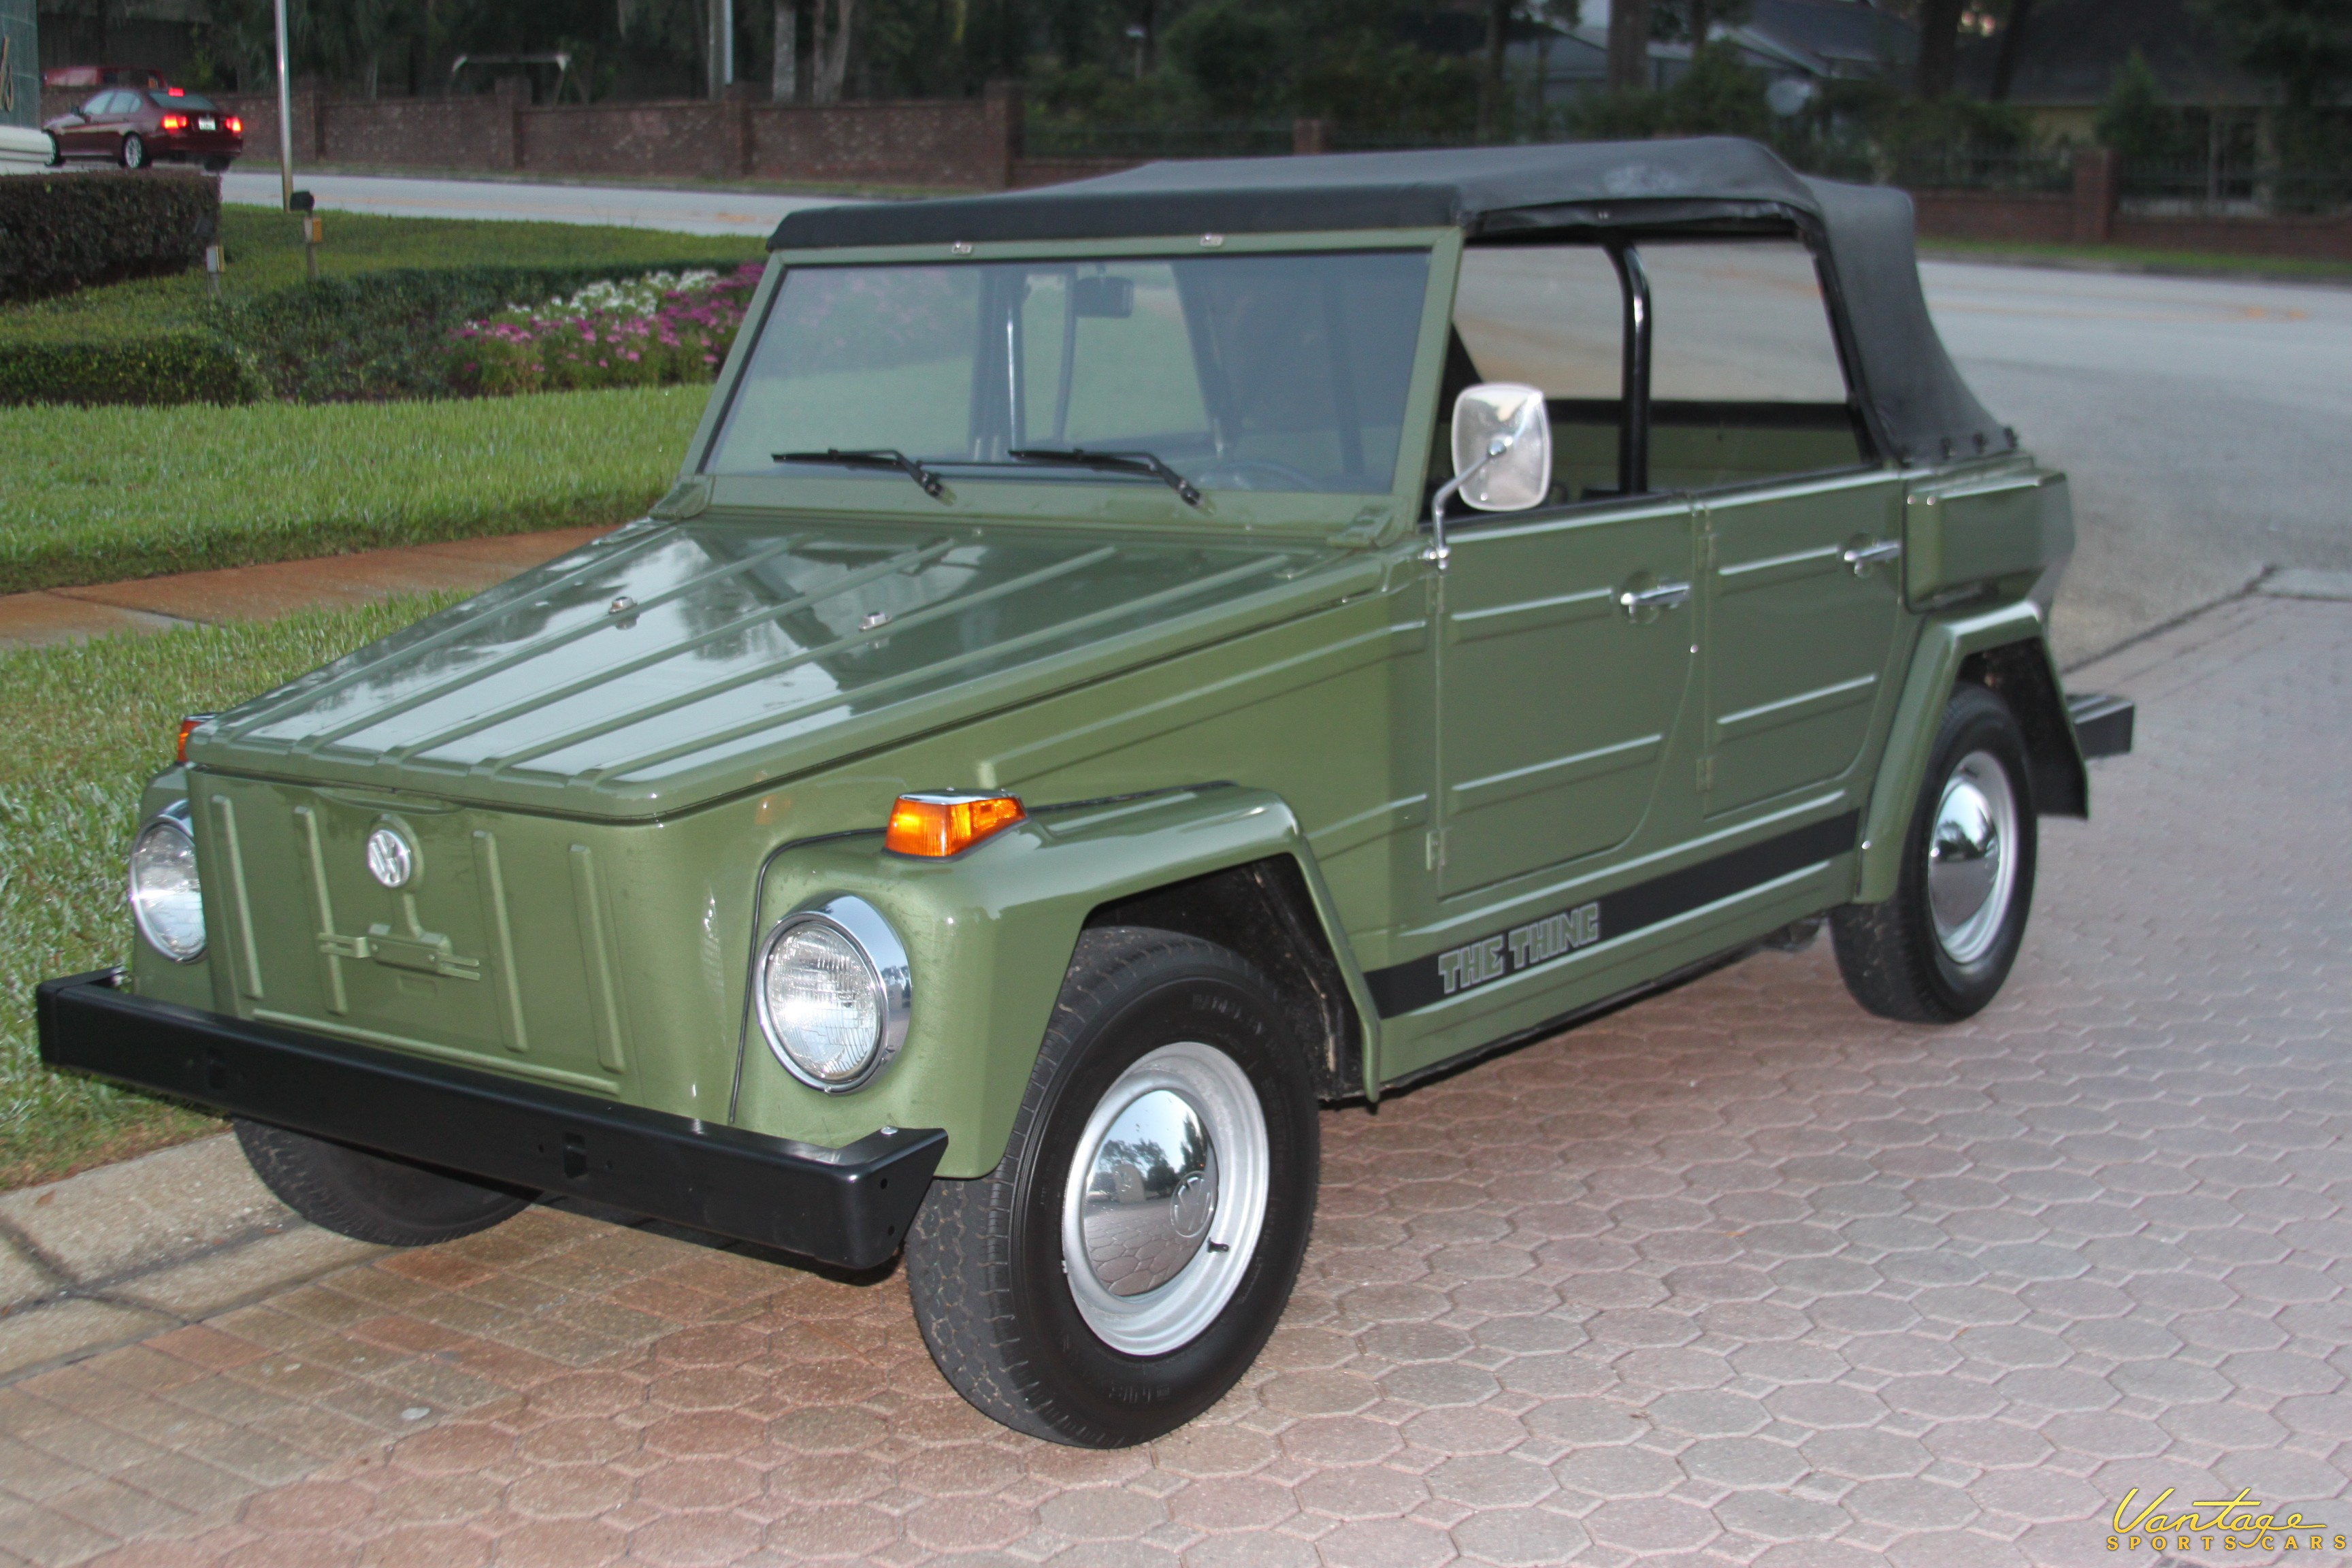 1974 Volkswagen Thing - SOLD! - Vantage Sports Cars ...